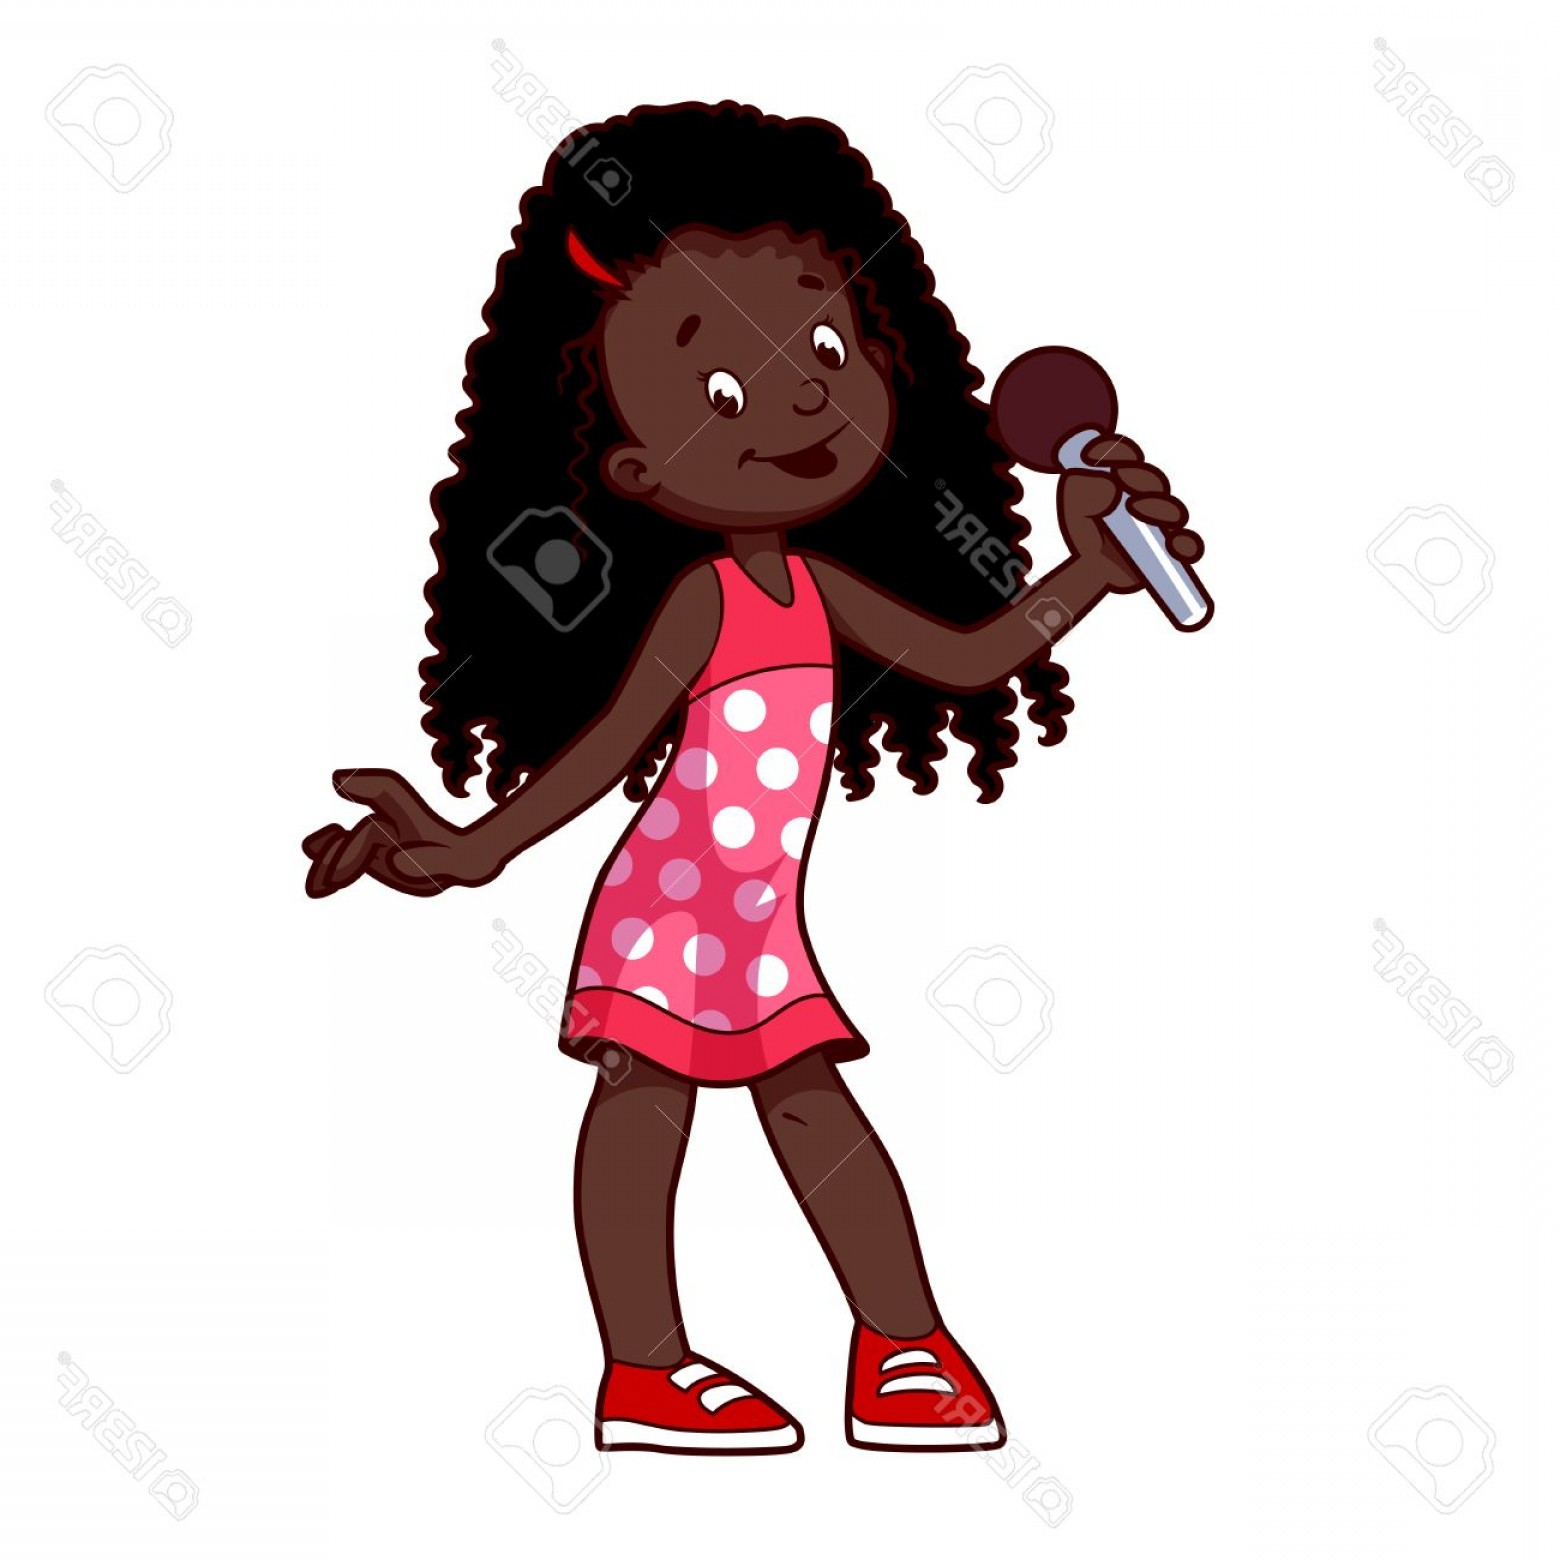 Singing Girls Vector Art: Photostock Vector African American Girl Singing With Microphone Clip Art Illustration On A White Background Cartoon Ch